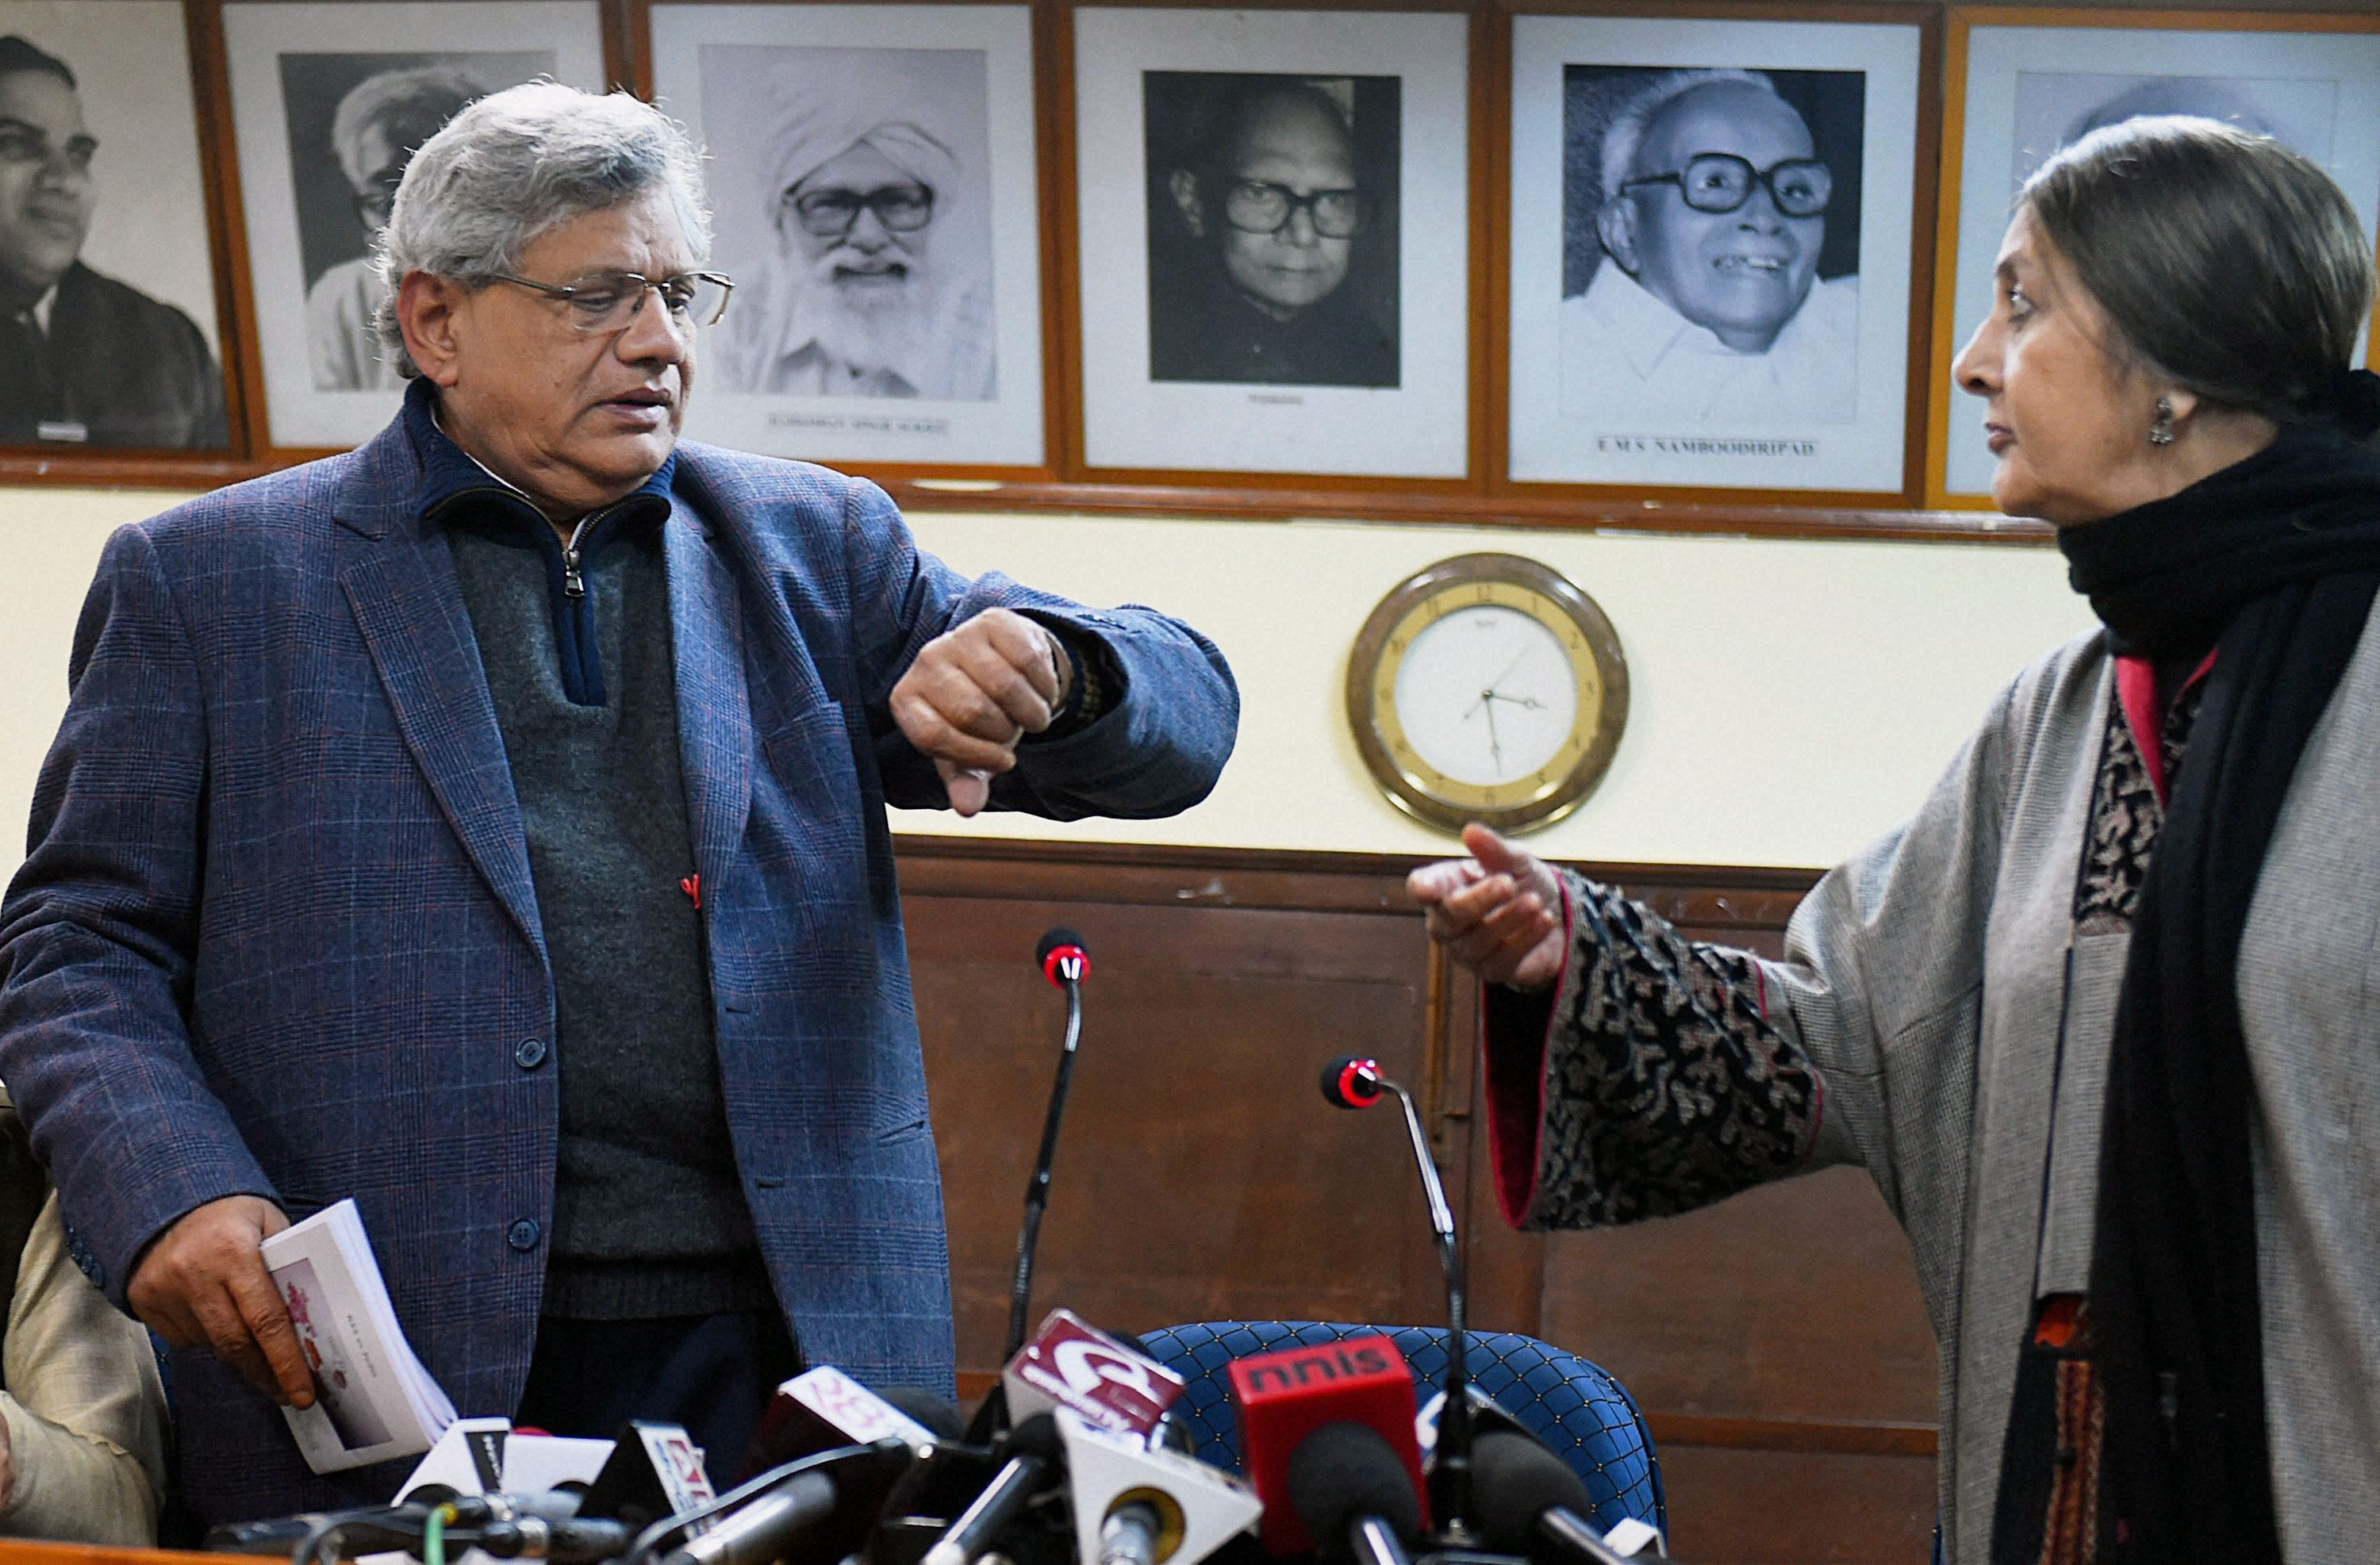 The Clock is Ticking, Comrades: General Secretary of the Communist Party of India (Marxist) Sitaram Yechury with politburo member Brinda Karat at the party's headquarters in New Delhi on Monday. Credit: PTI Photo by Shahbaz Khan